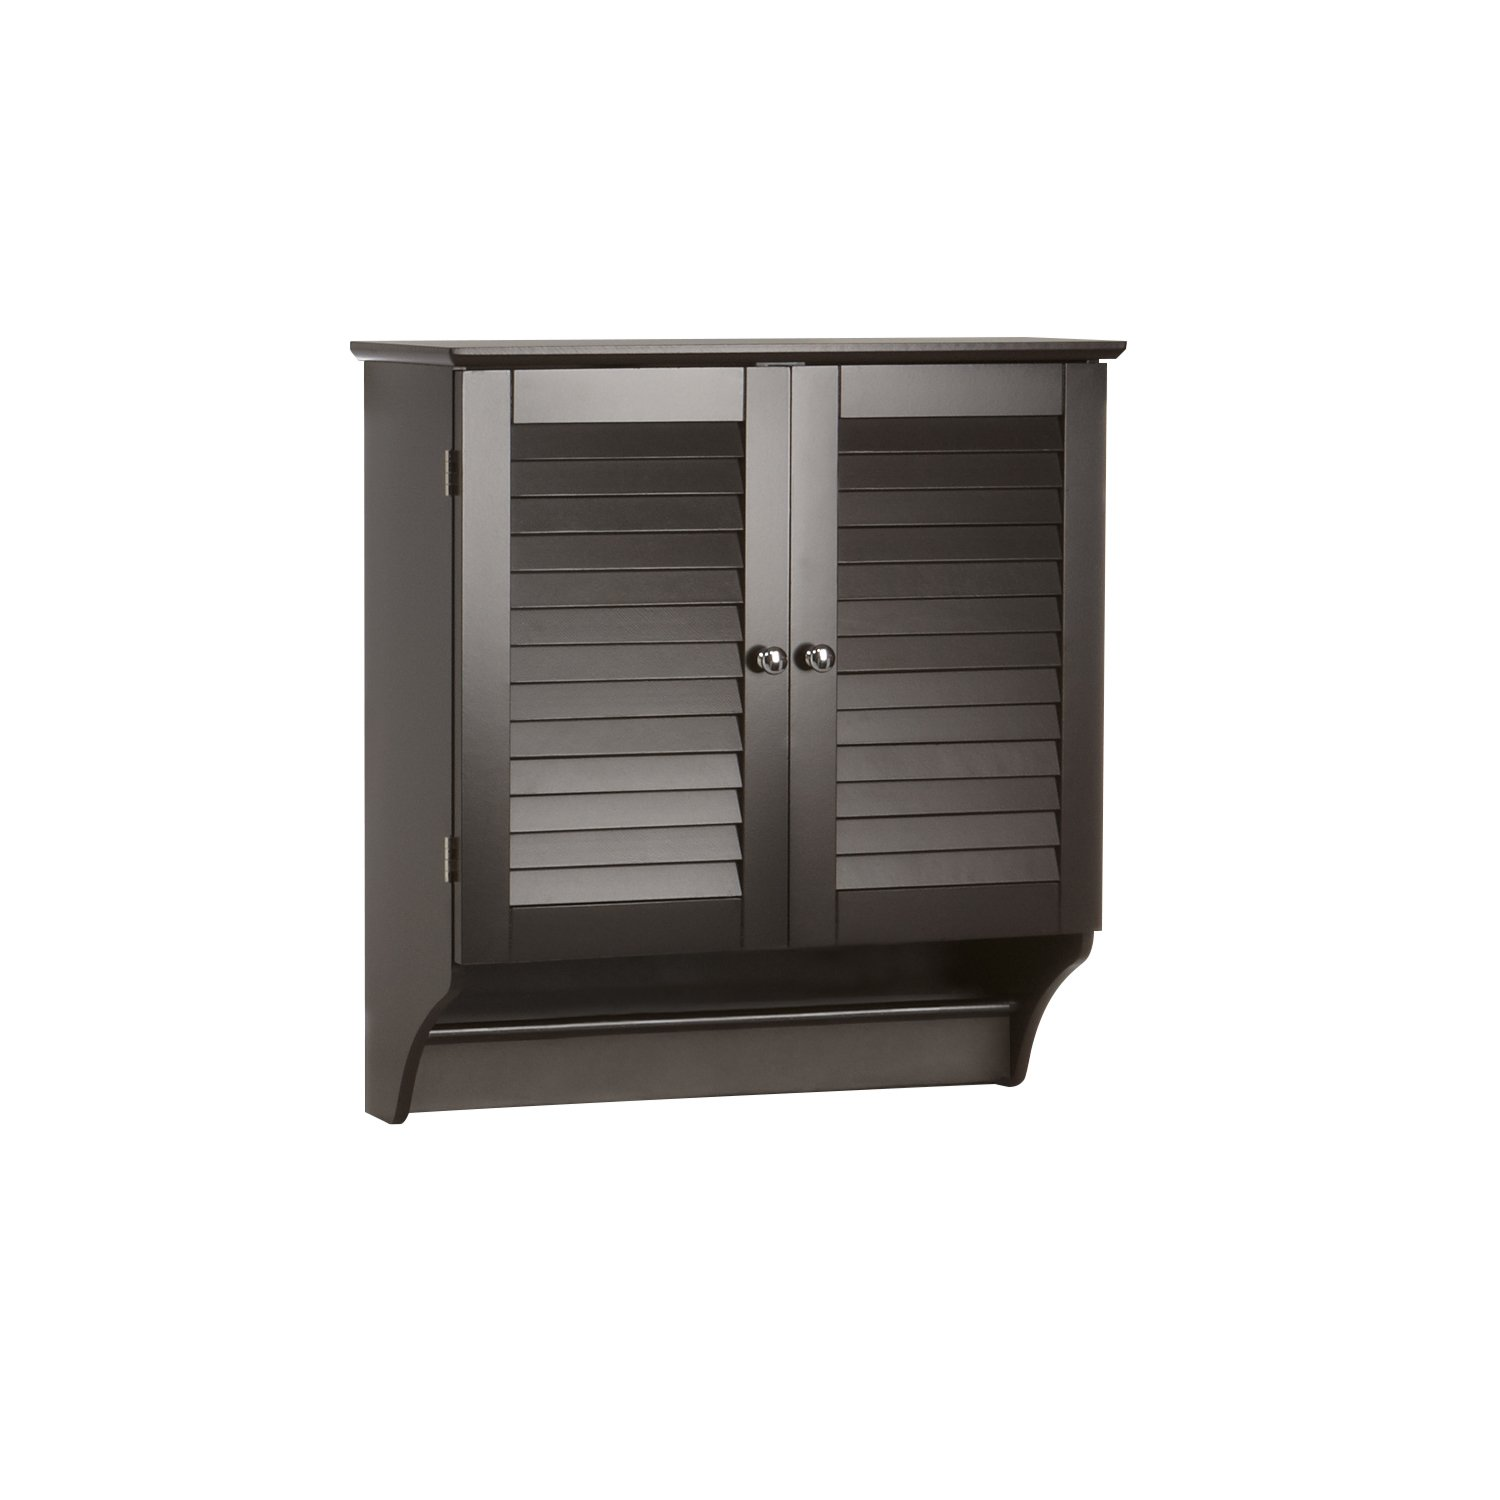 Bathroom storage wall cabinet - Amazon Com Riverridge Home Ellsworth Collection 2 Door Wall Cabinet Espresso Home Kitchen